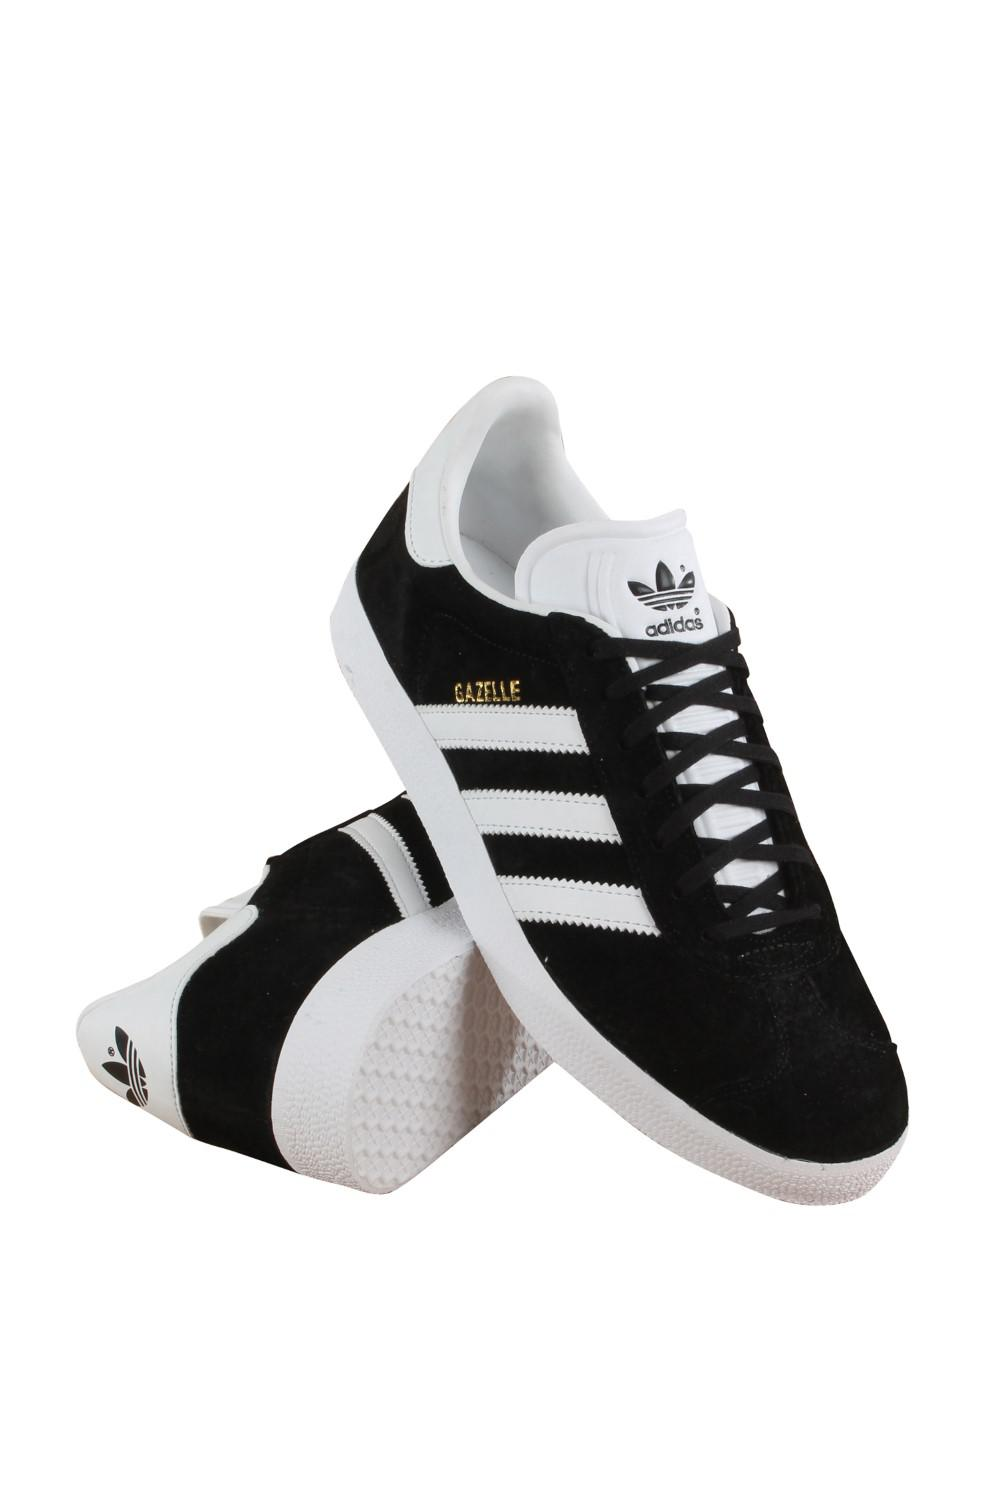 promo code 94650 0bfb2 adidas Bb5476  Originals Black white gold Metallic Gazelle Lace-up ...